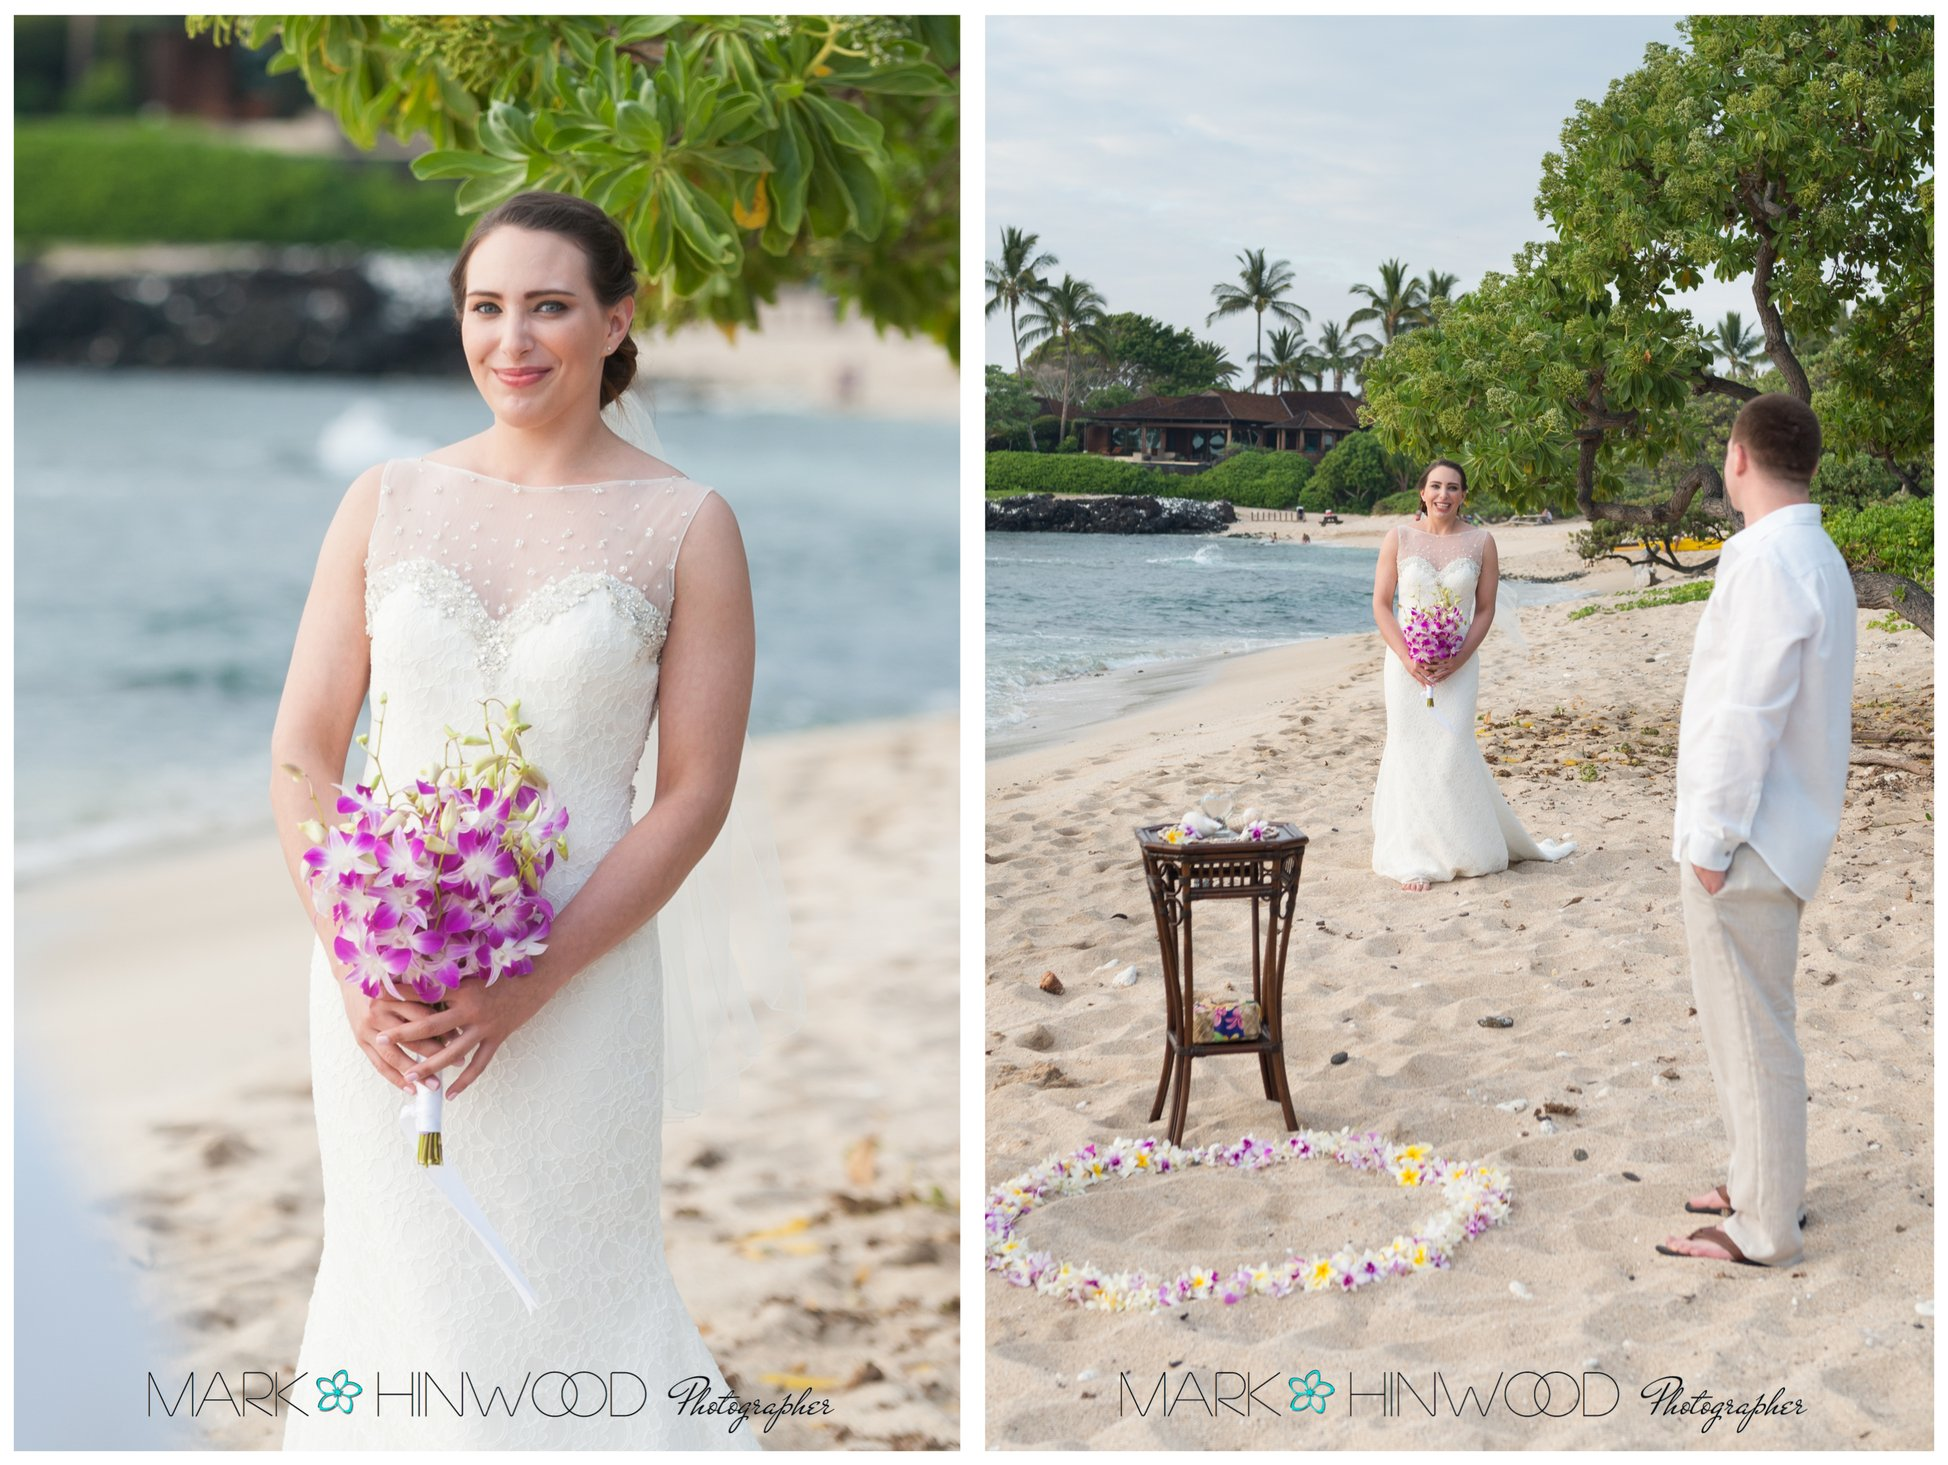 Top Kailua Kona Hawaii Wedding Photographers 2